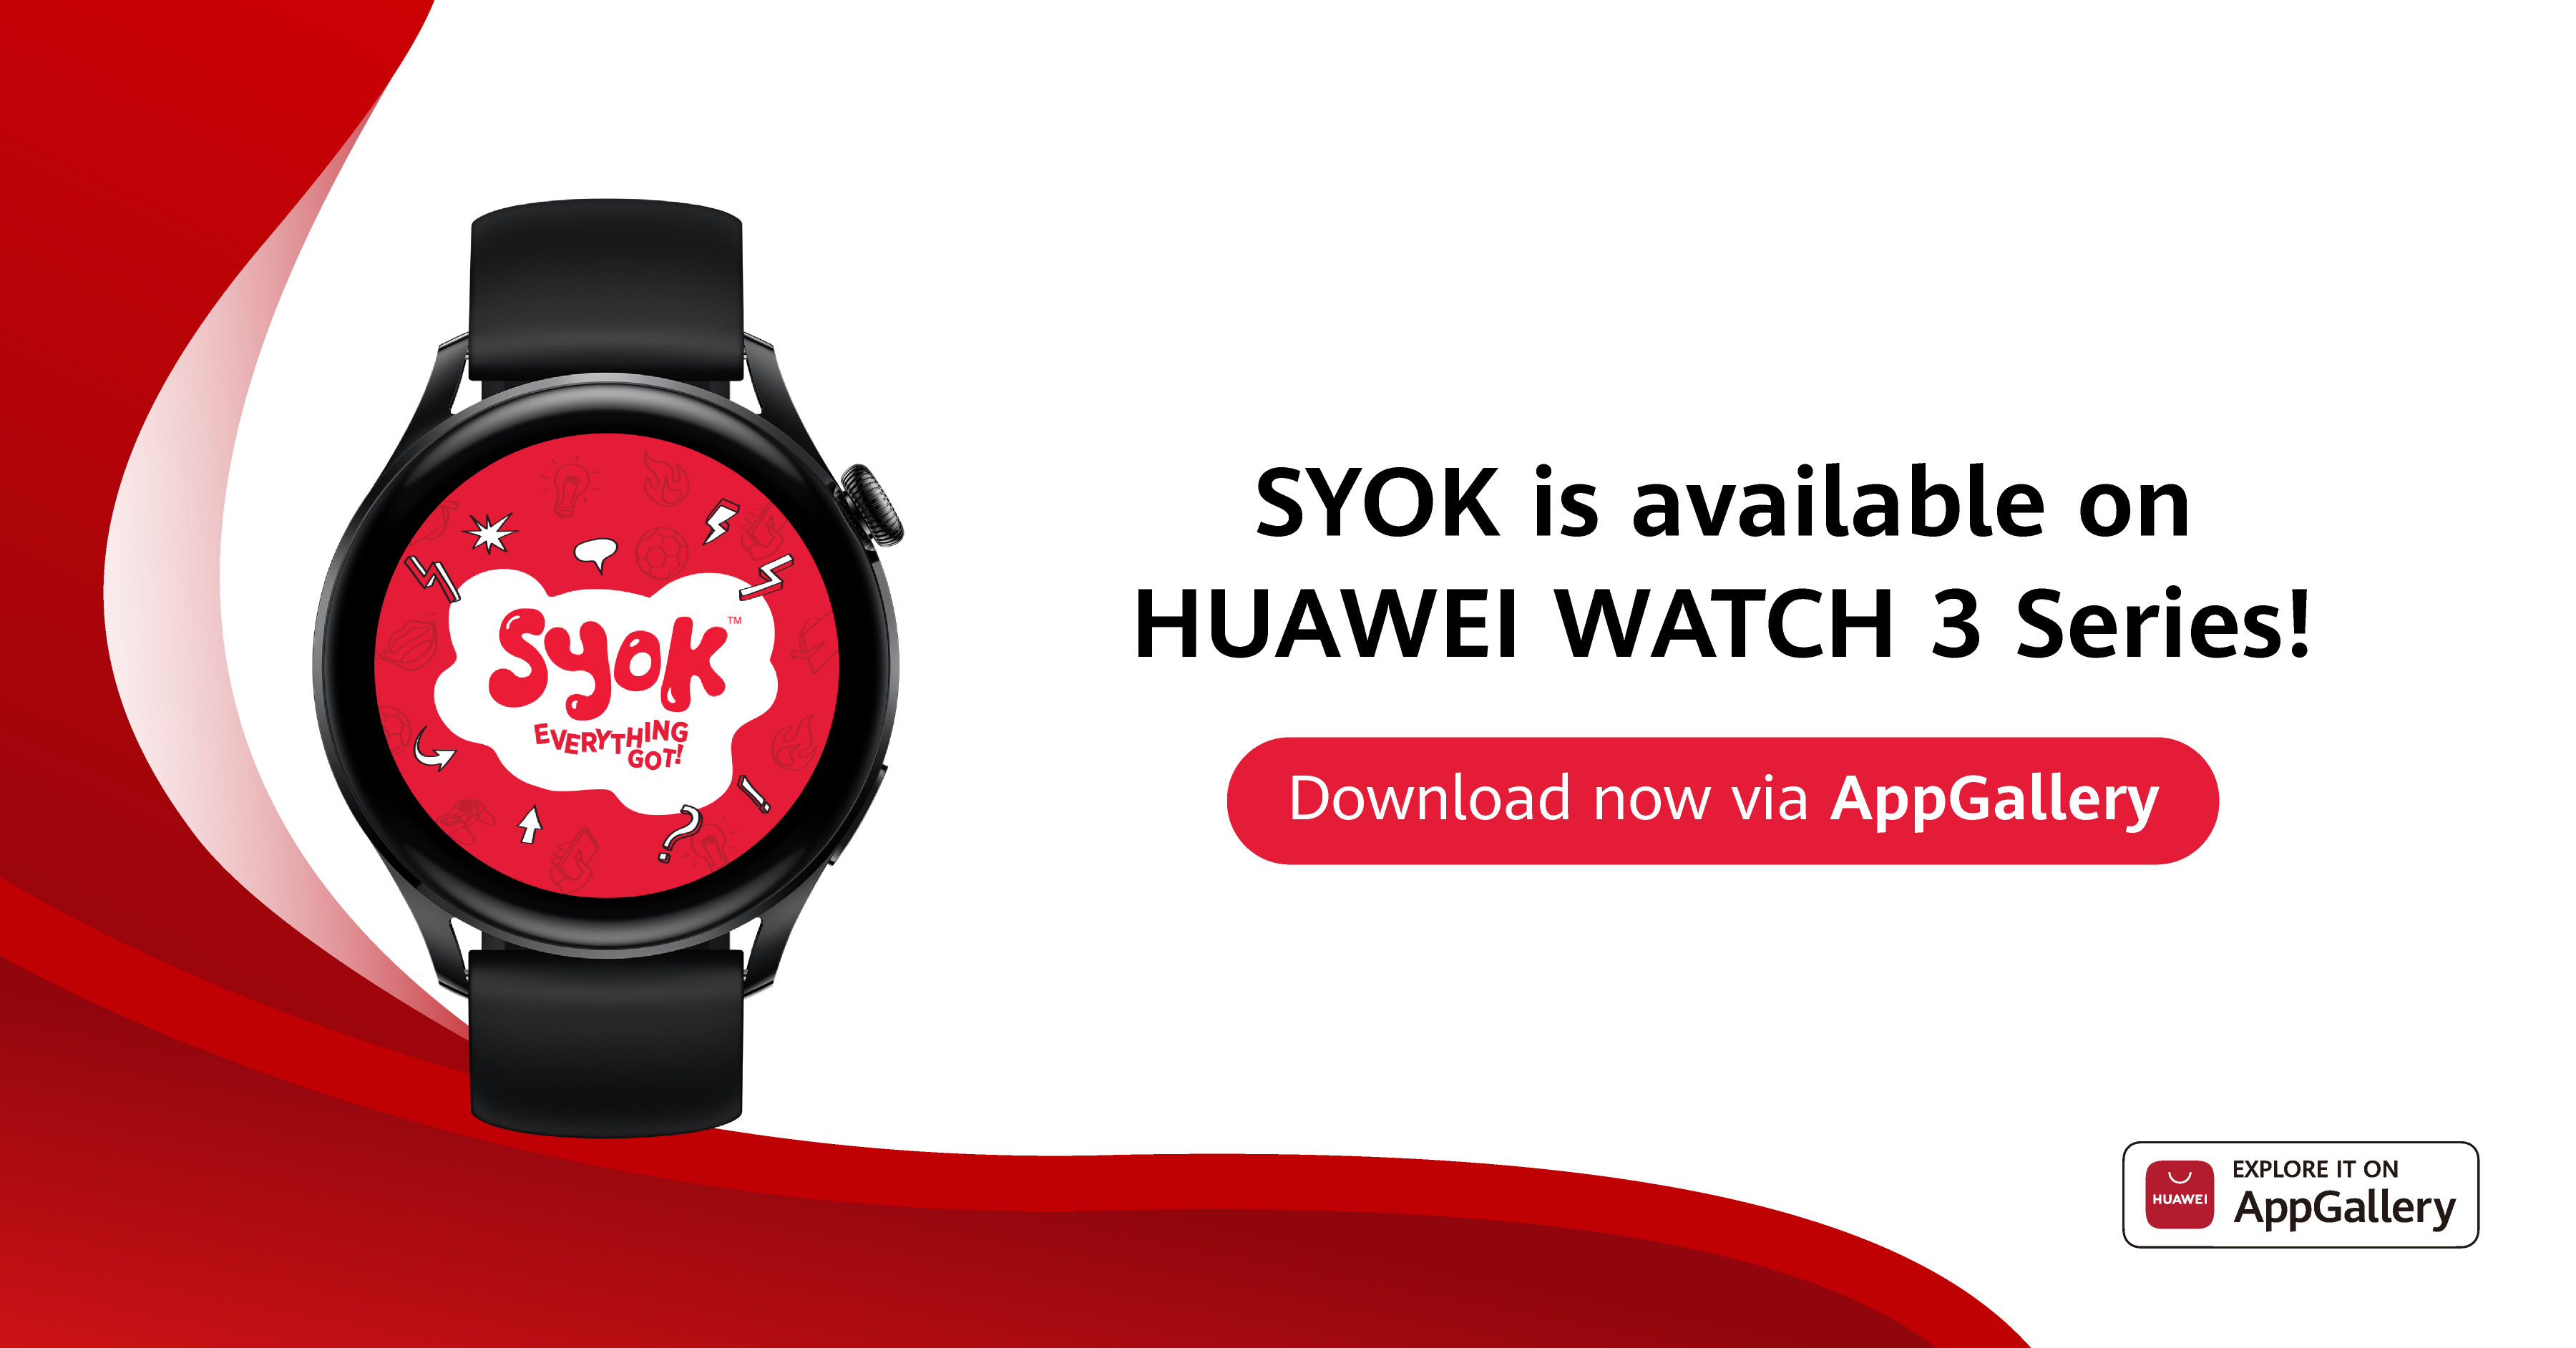 SYOK App Now Available on the HUAWEI WATCH 3 Series